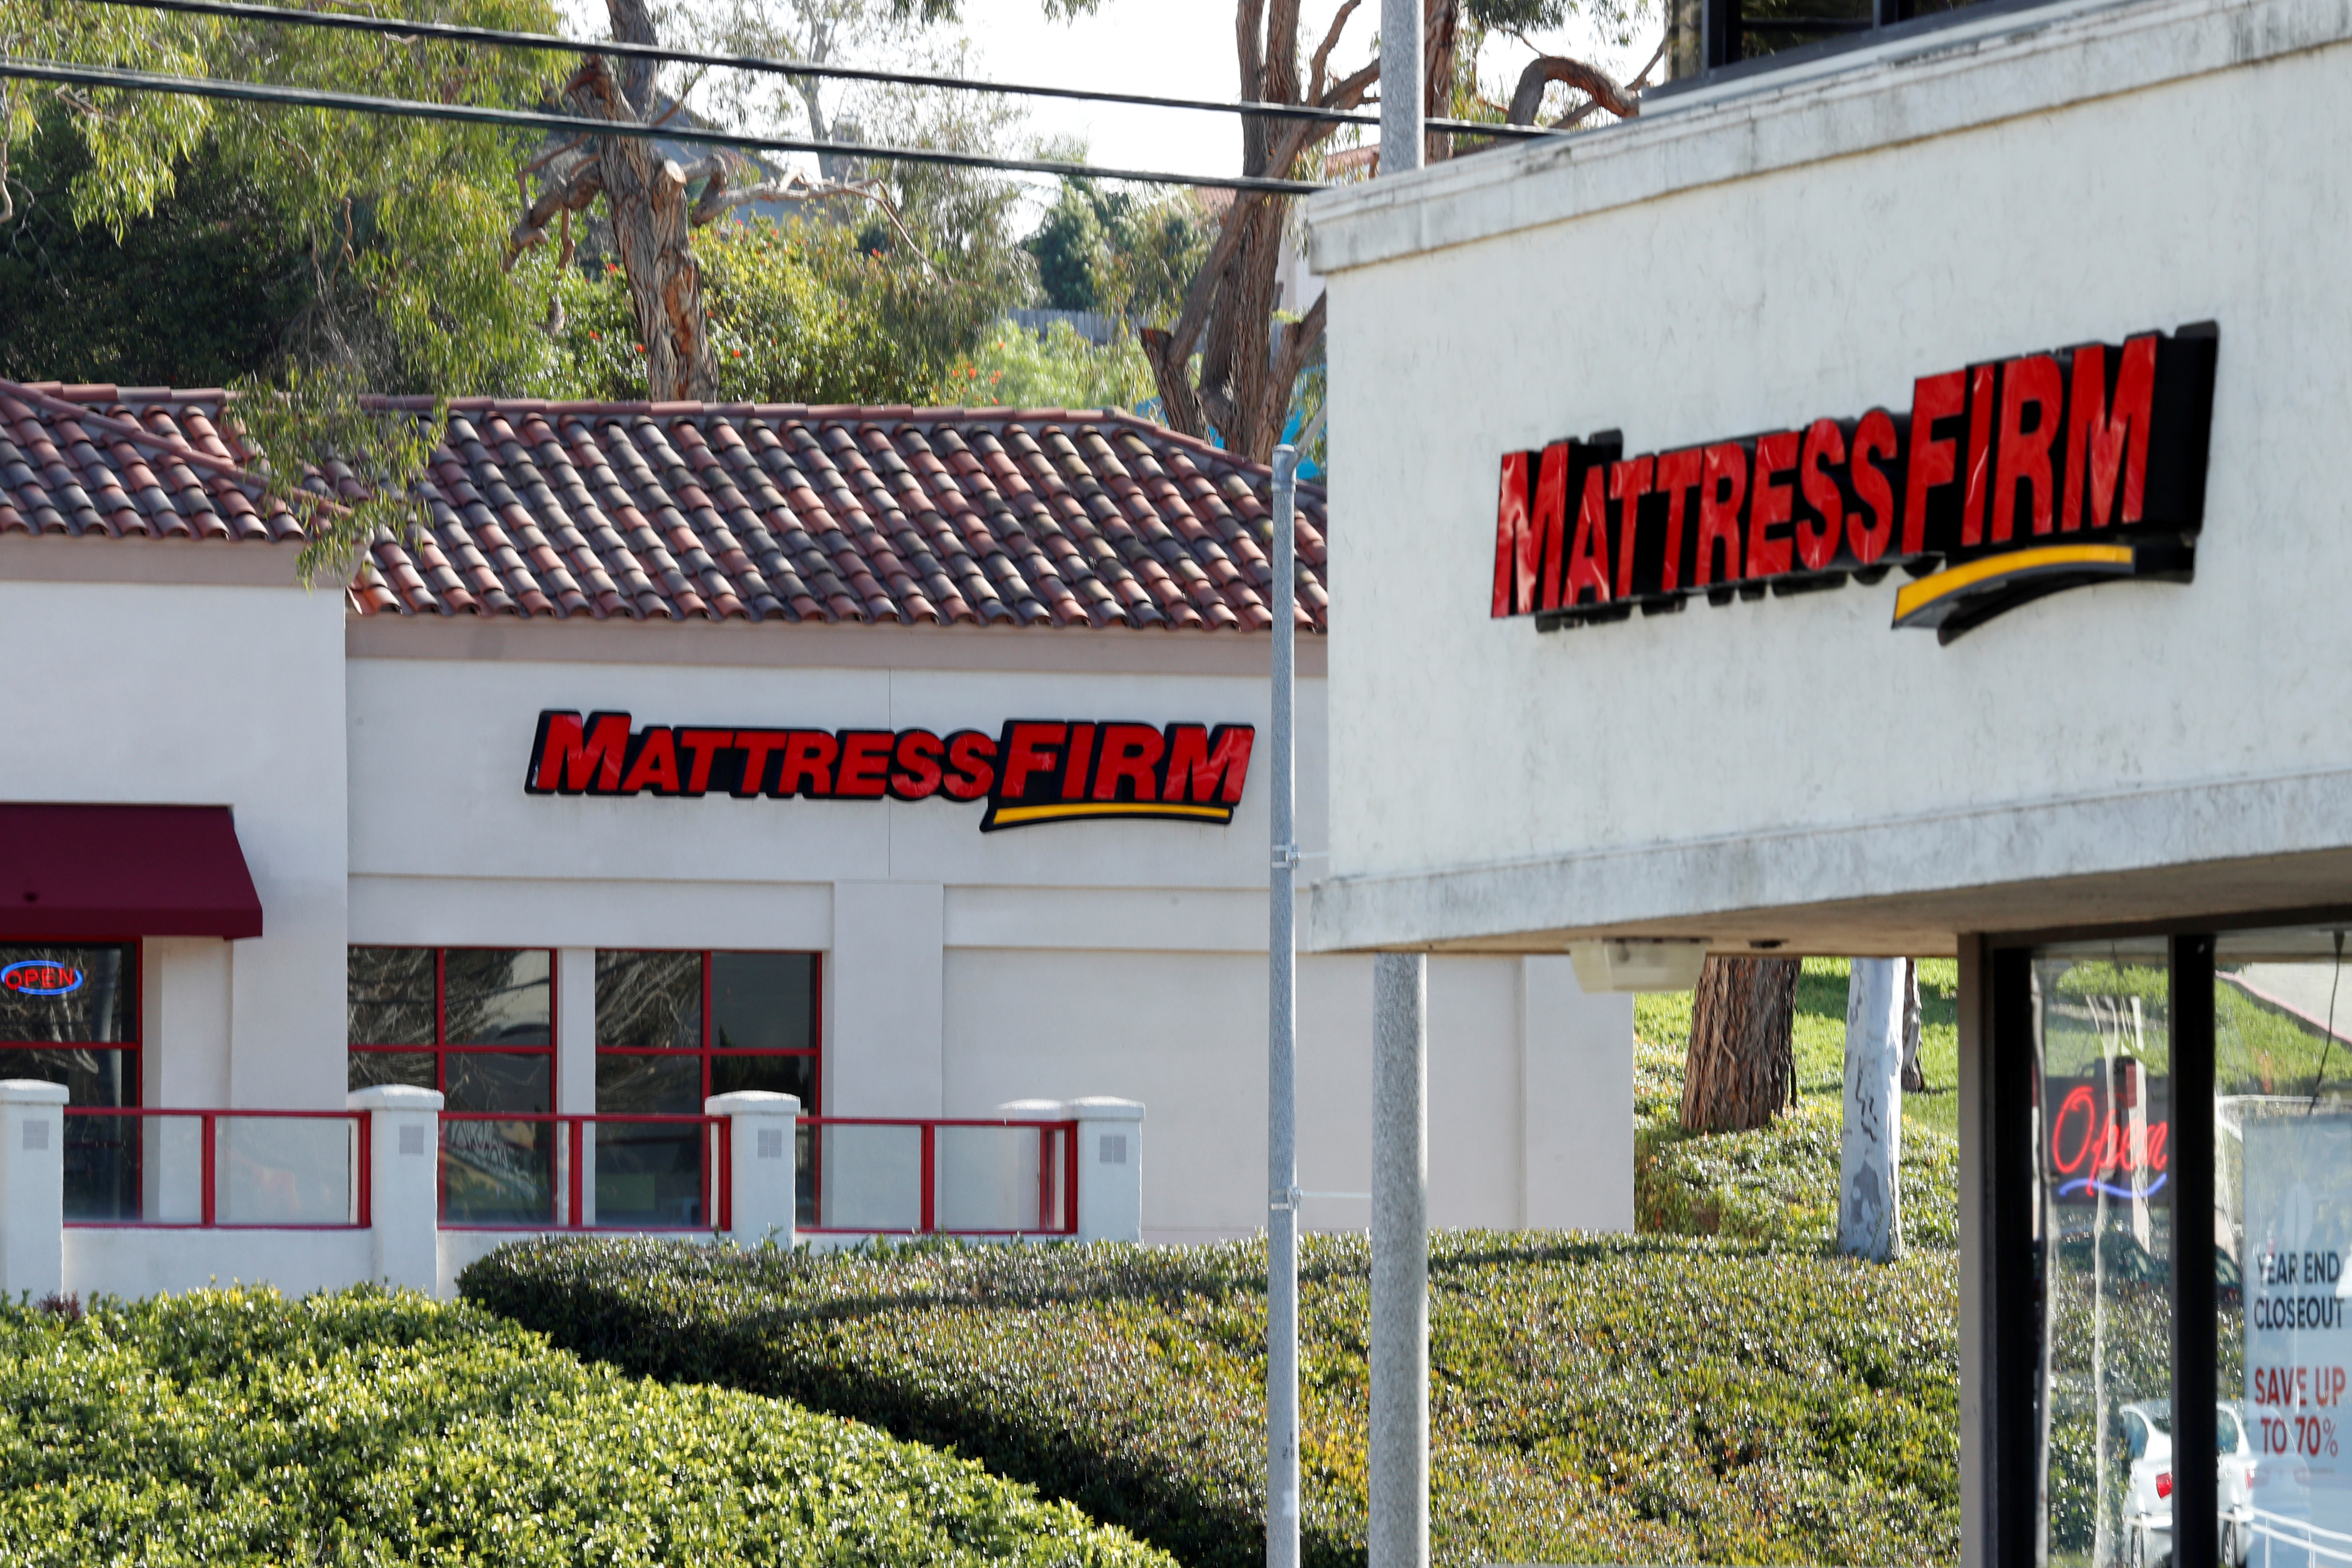 Two Mattress Firm stores, a brand owned by Steinhoff, lie on either side of the street in Encinitas, California, U.S., January 25, 2018.    REUTERS/Mike Blake